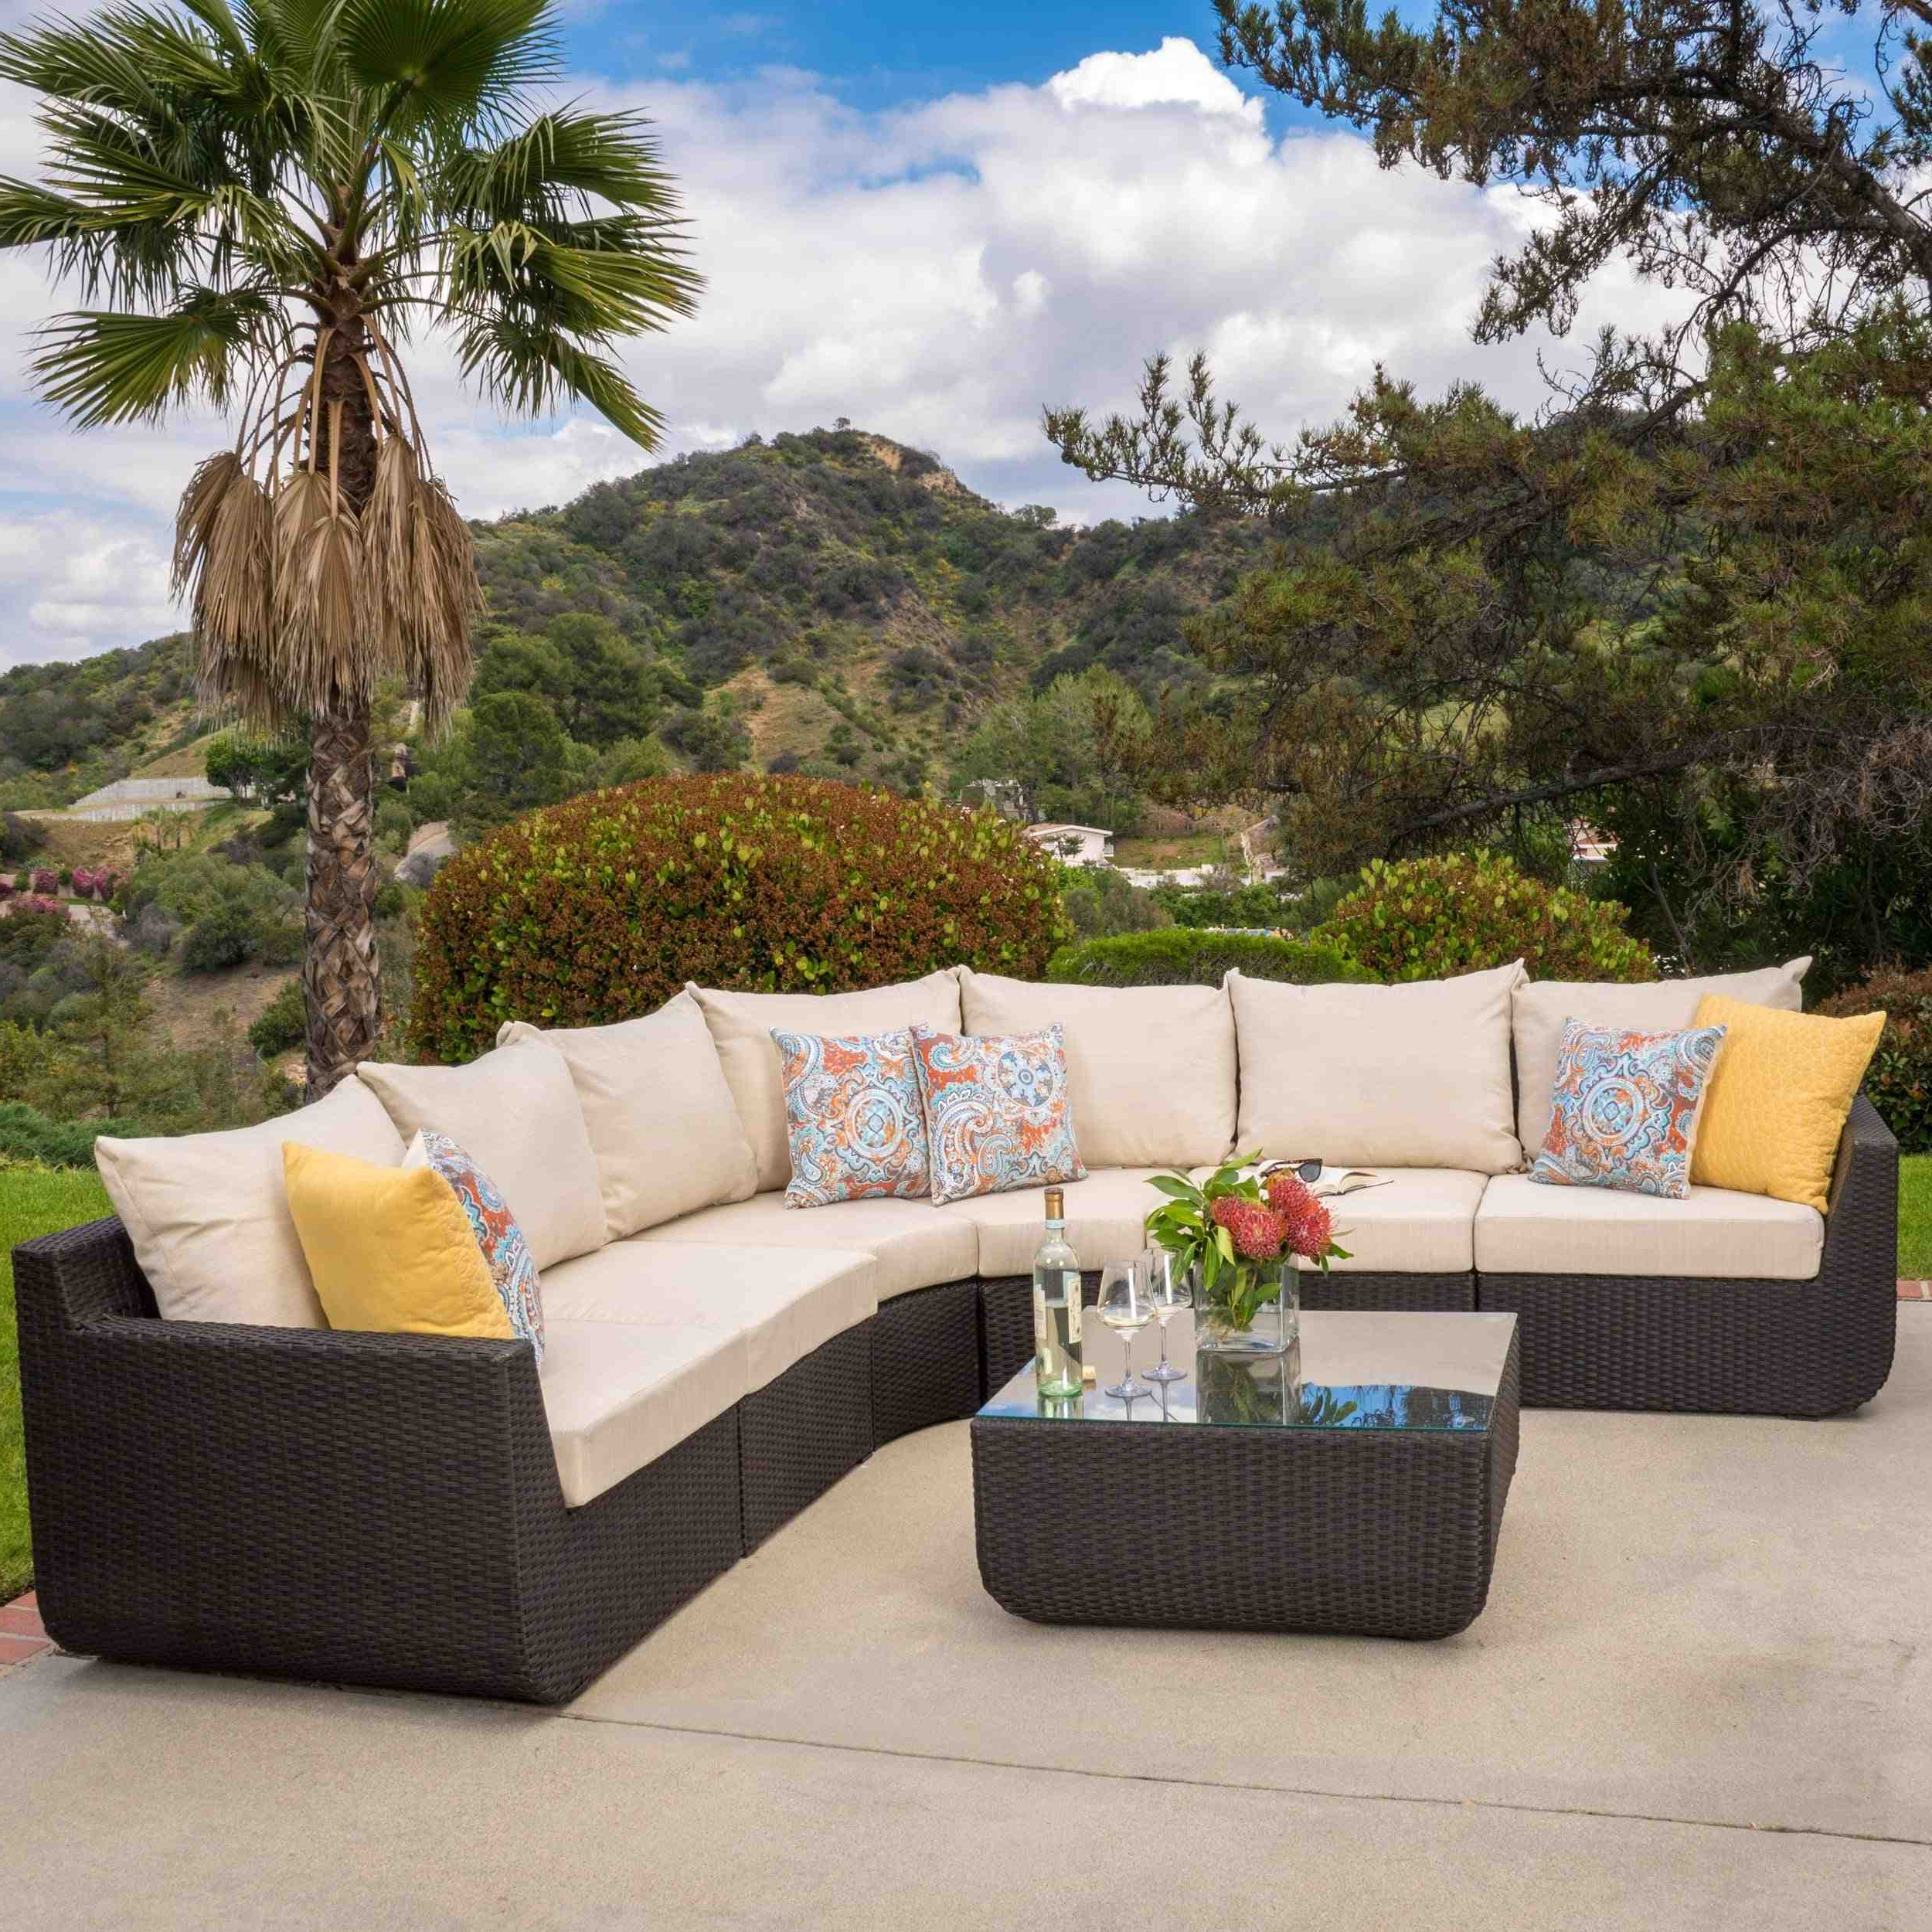 Fashionable Lawson Patio Sofas With Cushions In Surprising Sectional Replacement Cushions Corner Adorable (View 24 of 25)